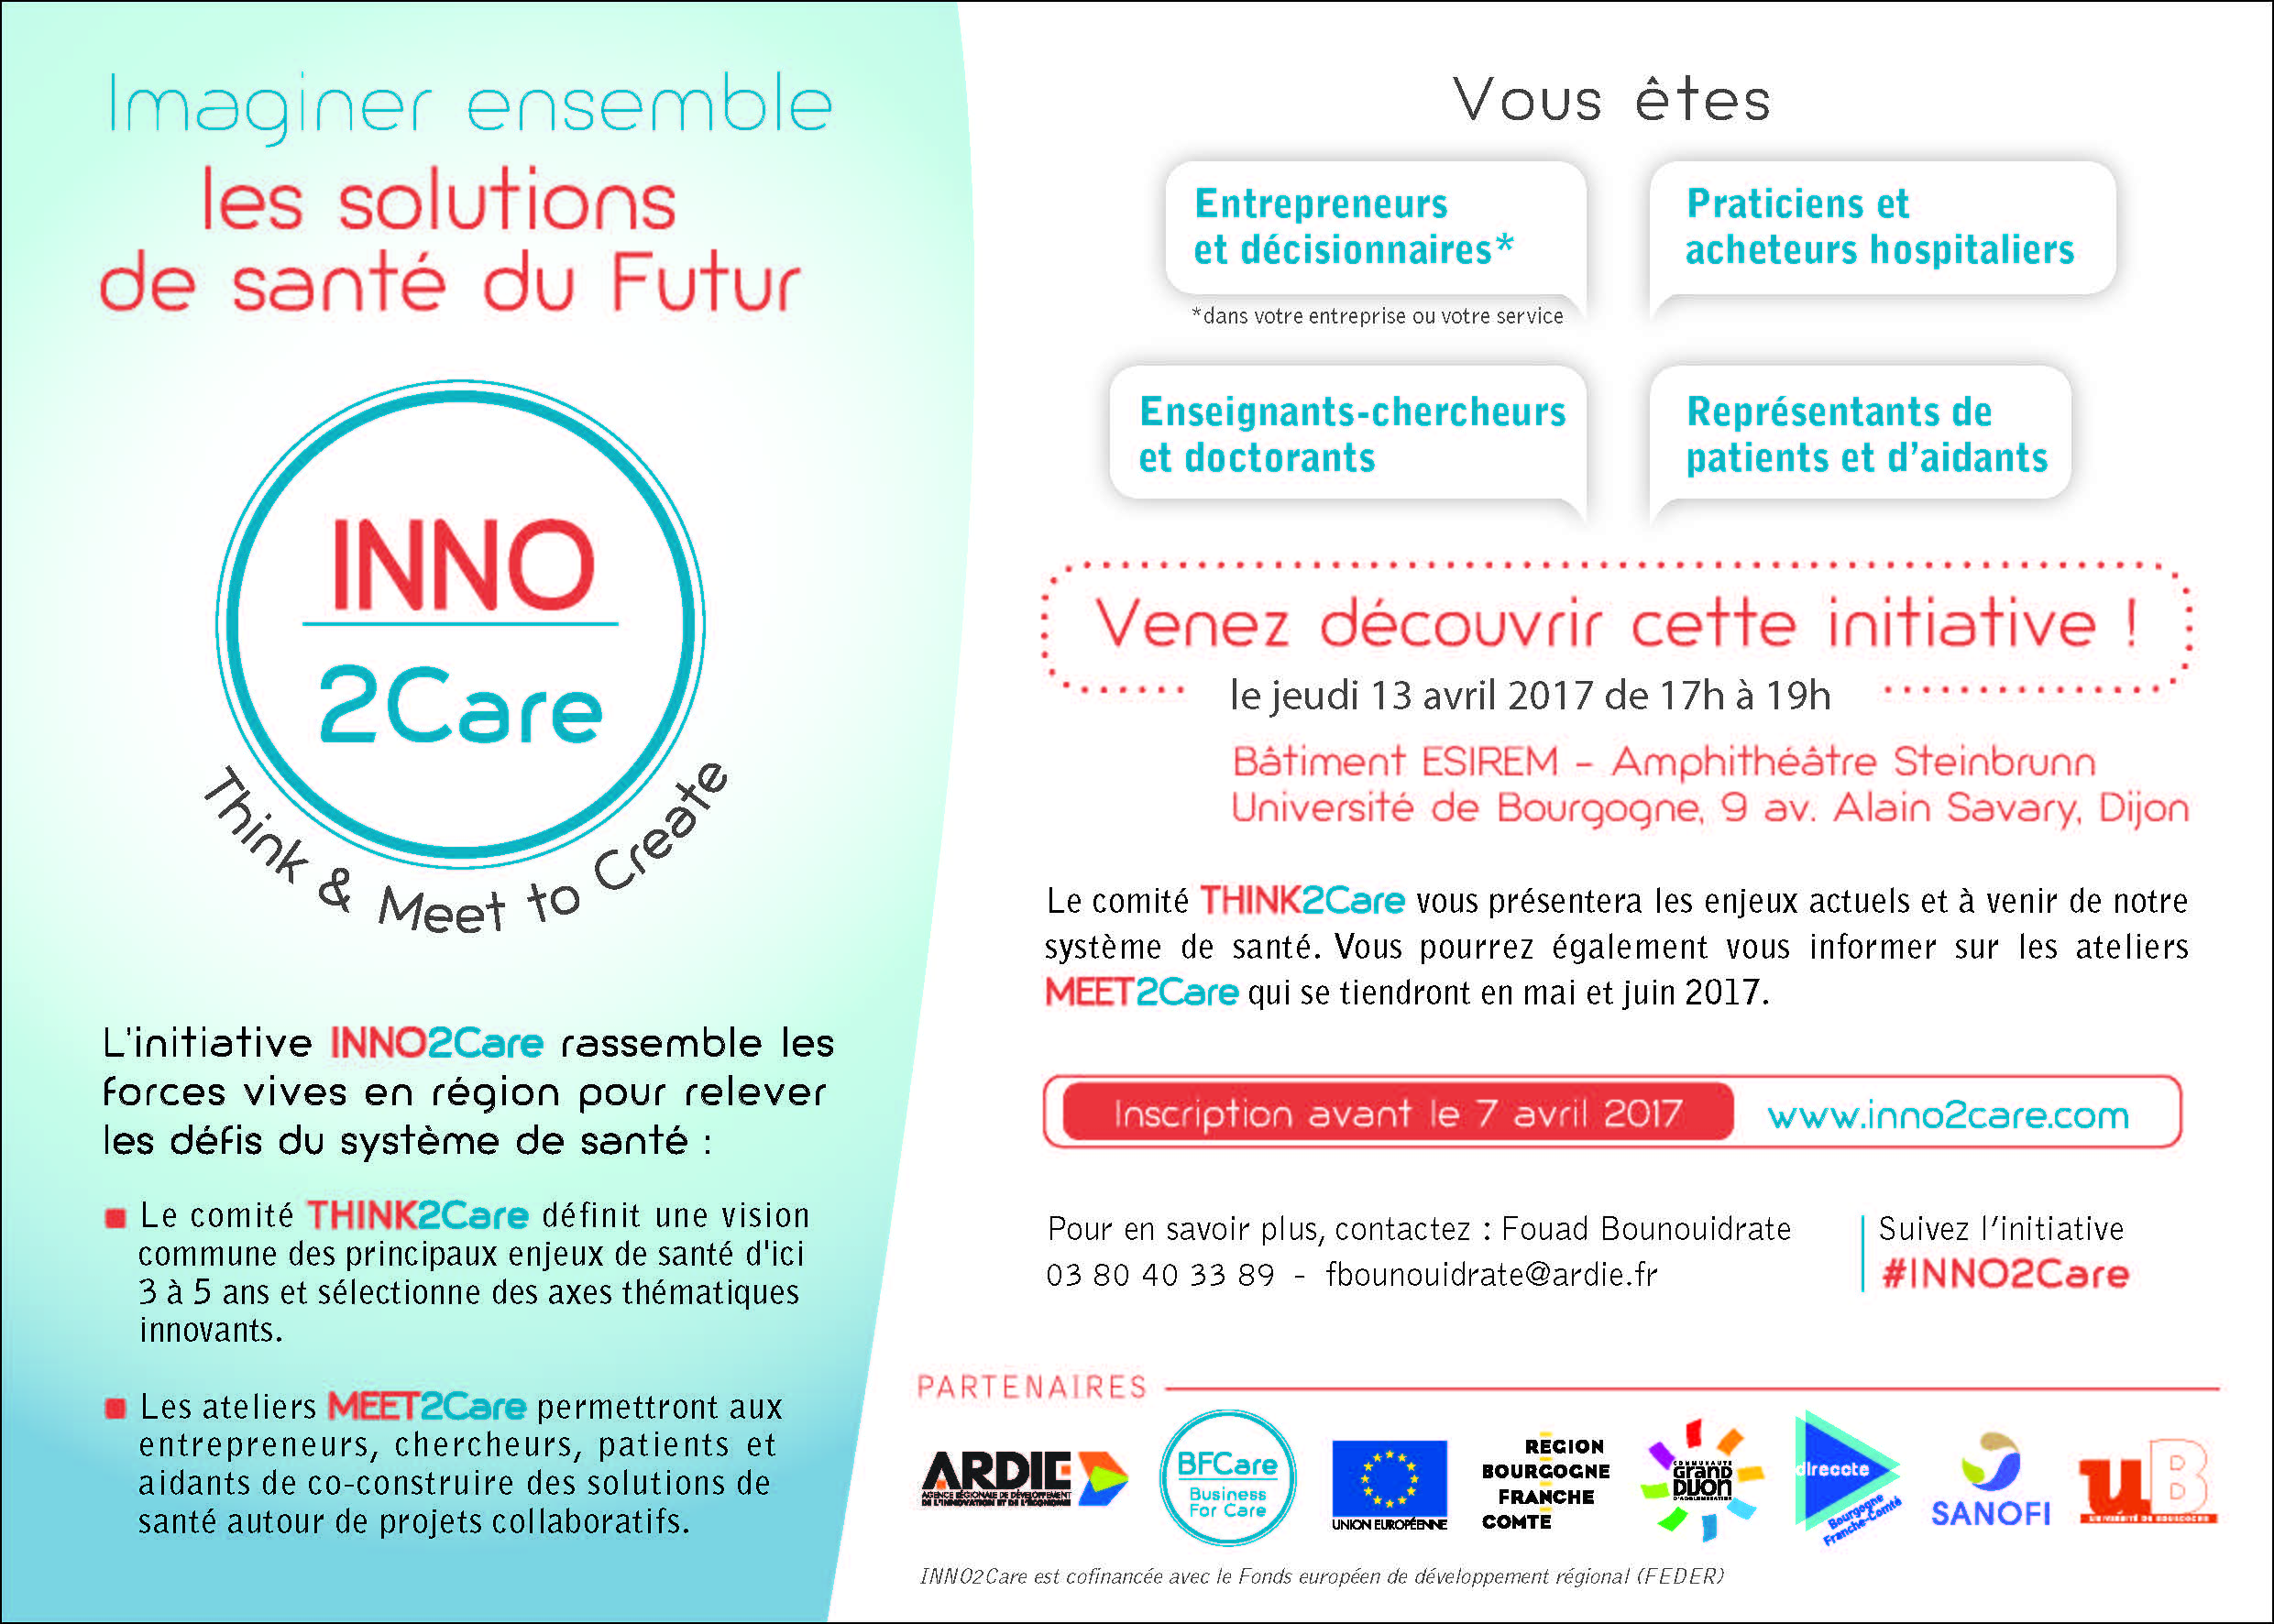 2Flyer INNO2Care 20170327 Page 1